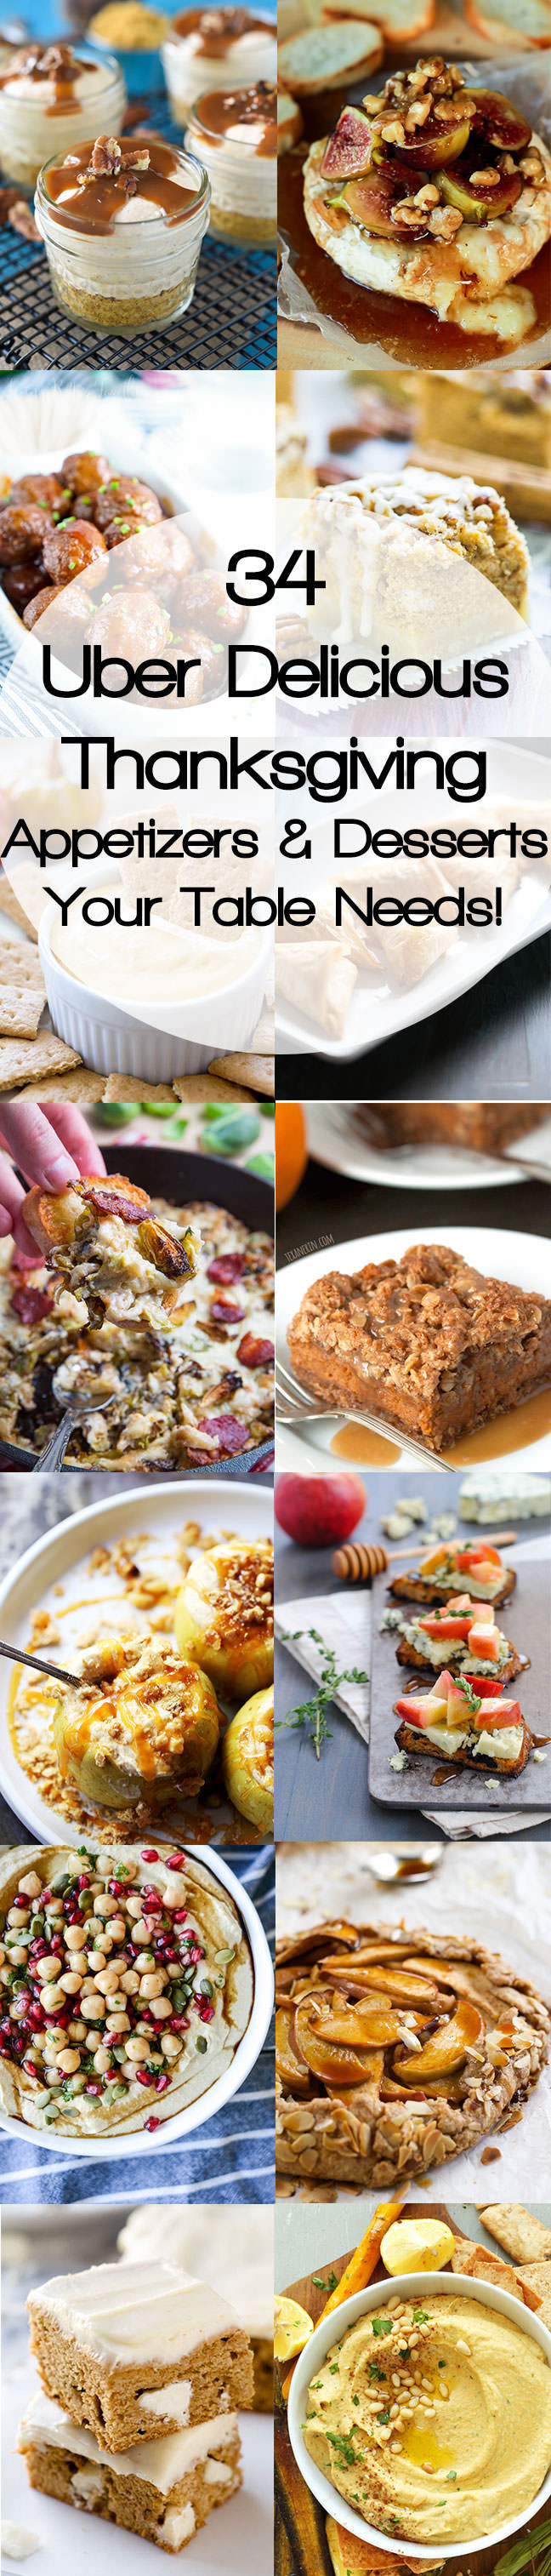 Healthy Delicious Appetizers  Healthy Thanksgiving Appetizers & Desserts